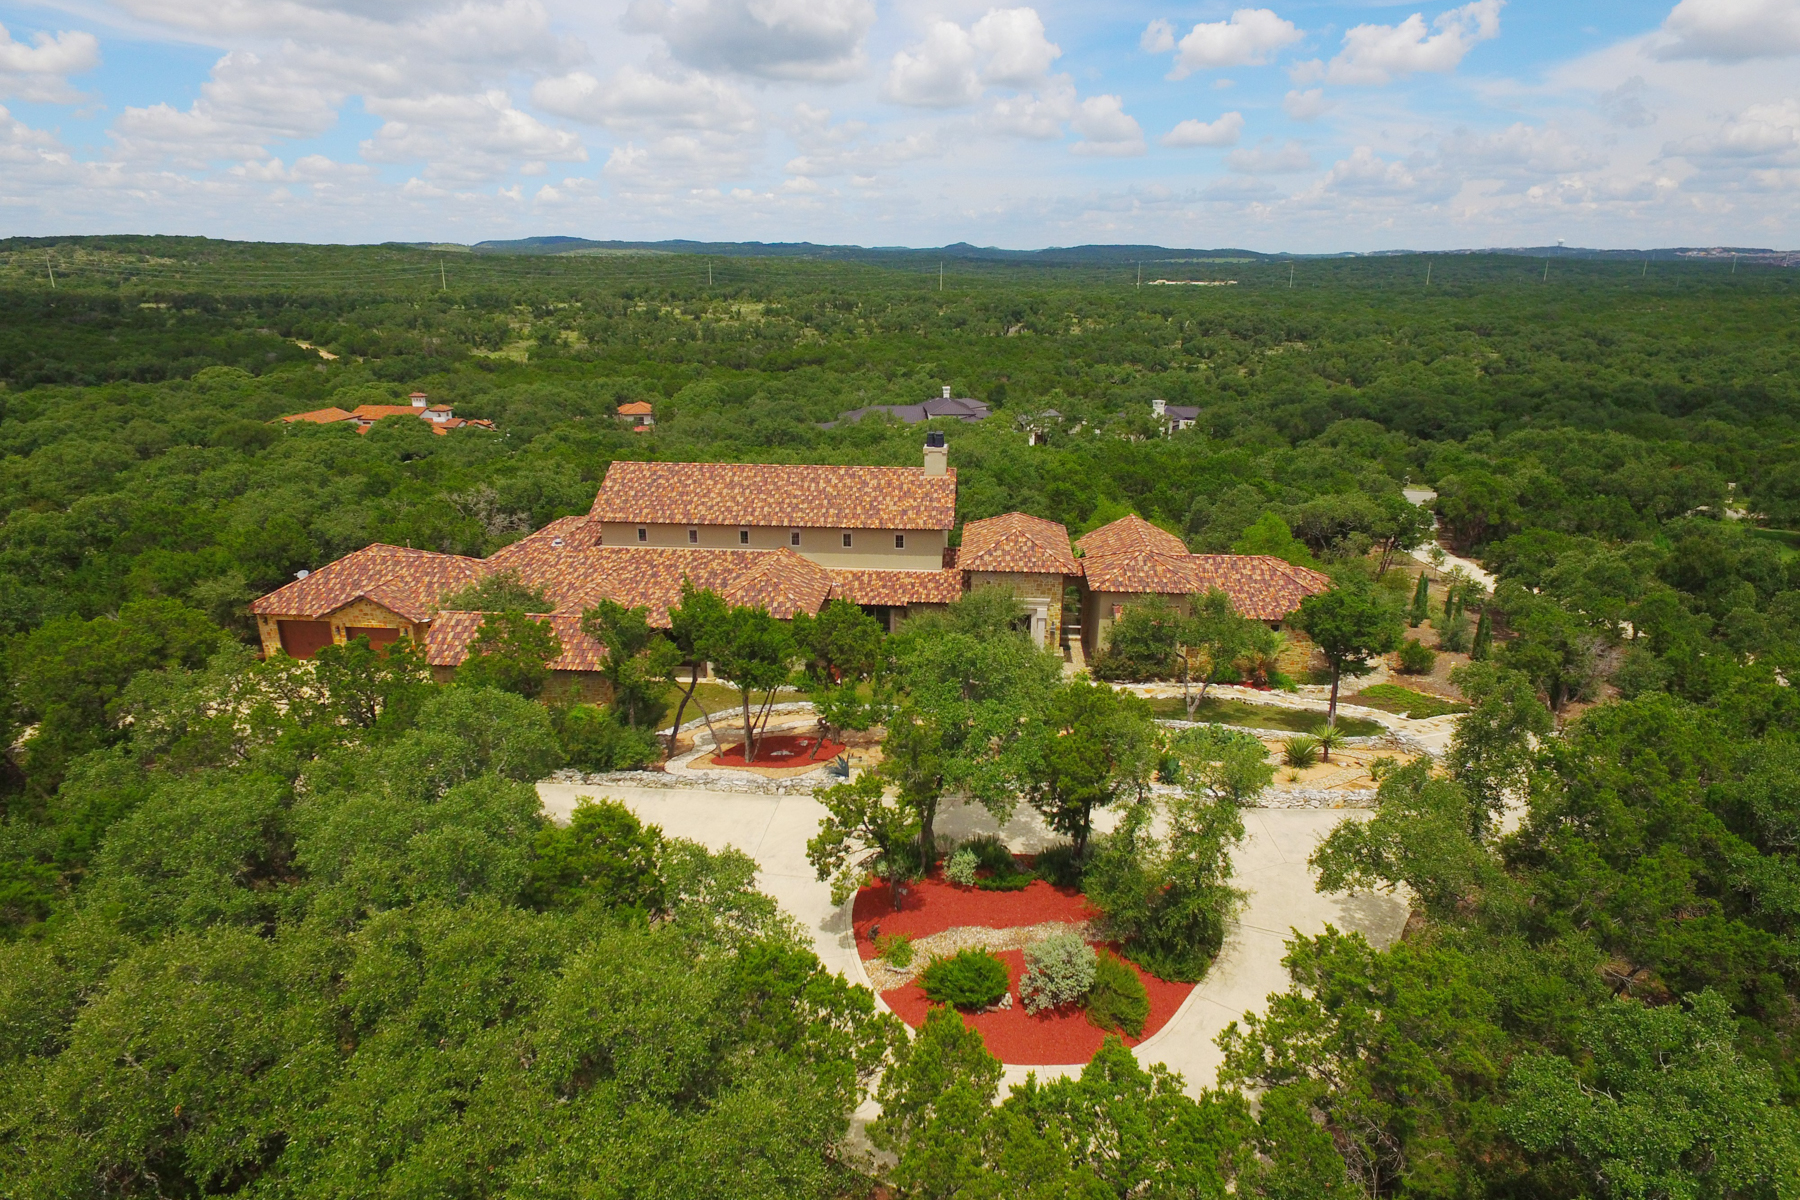 Maison unifamiliale pour l Vente à Breathtaking Estate in Greystone Estates 19418 Settlers Crk San Antonio, Texas, 78258 États-Unis